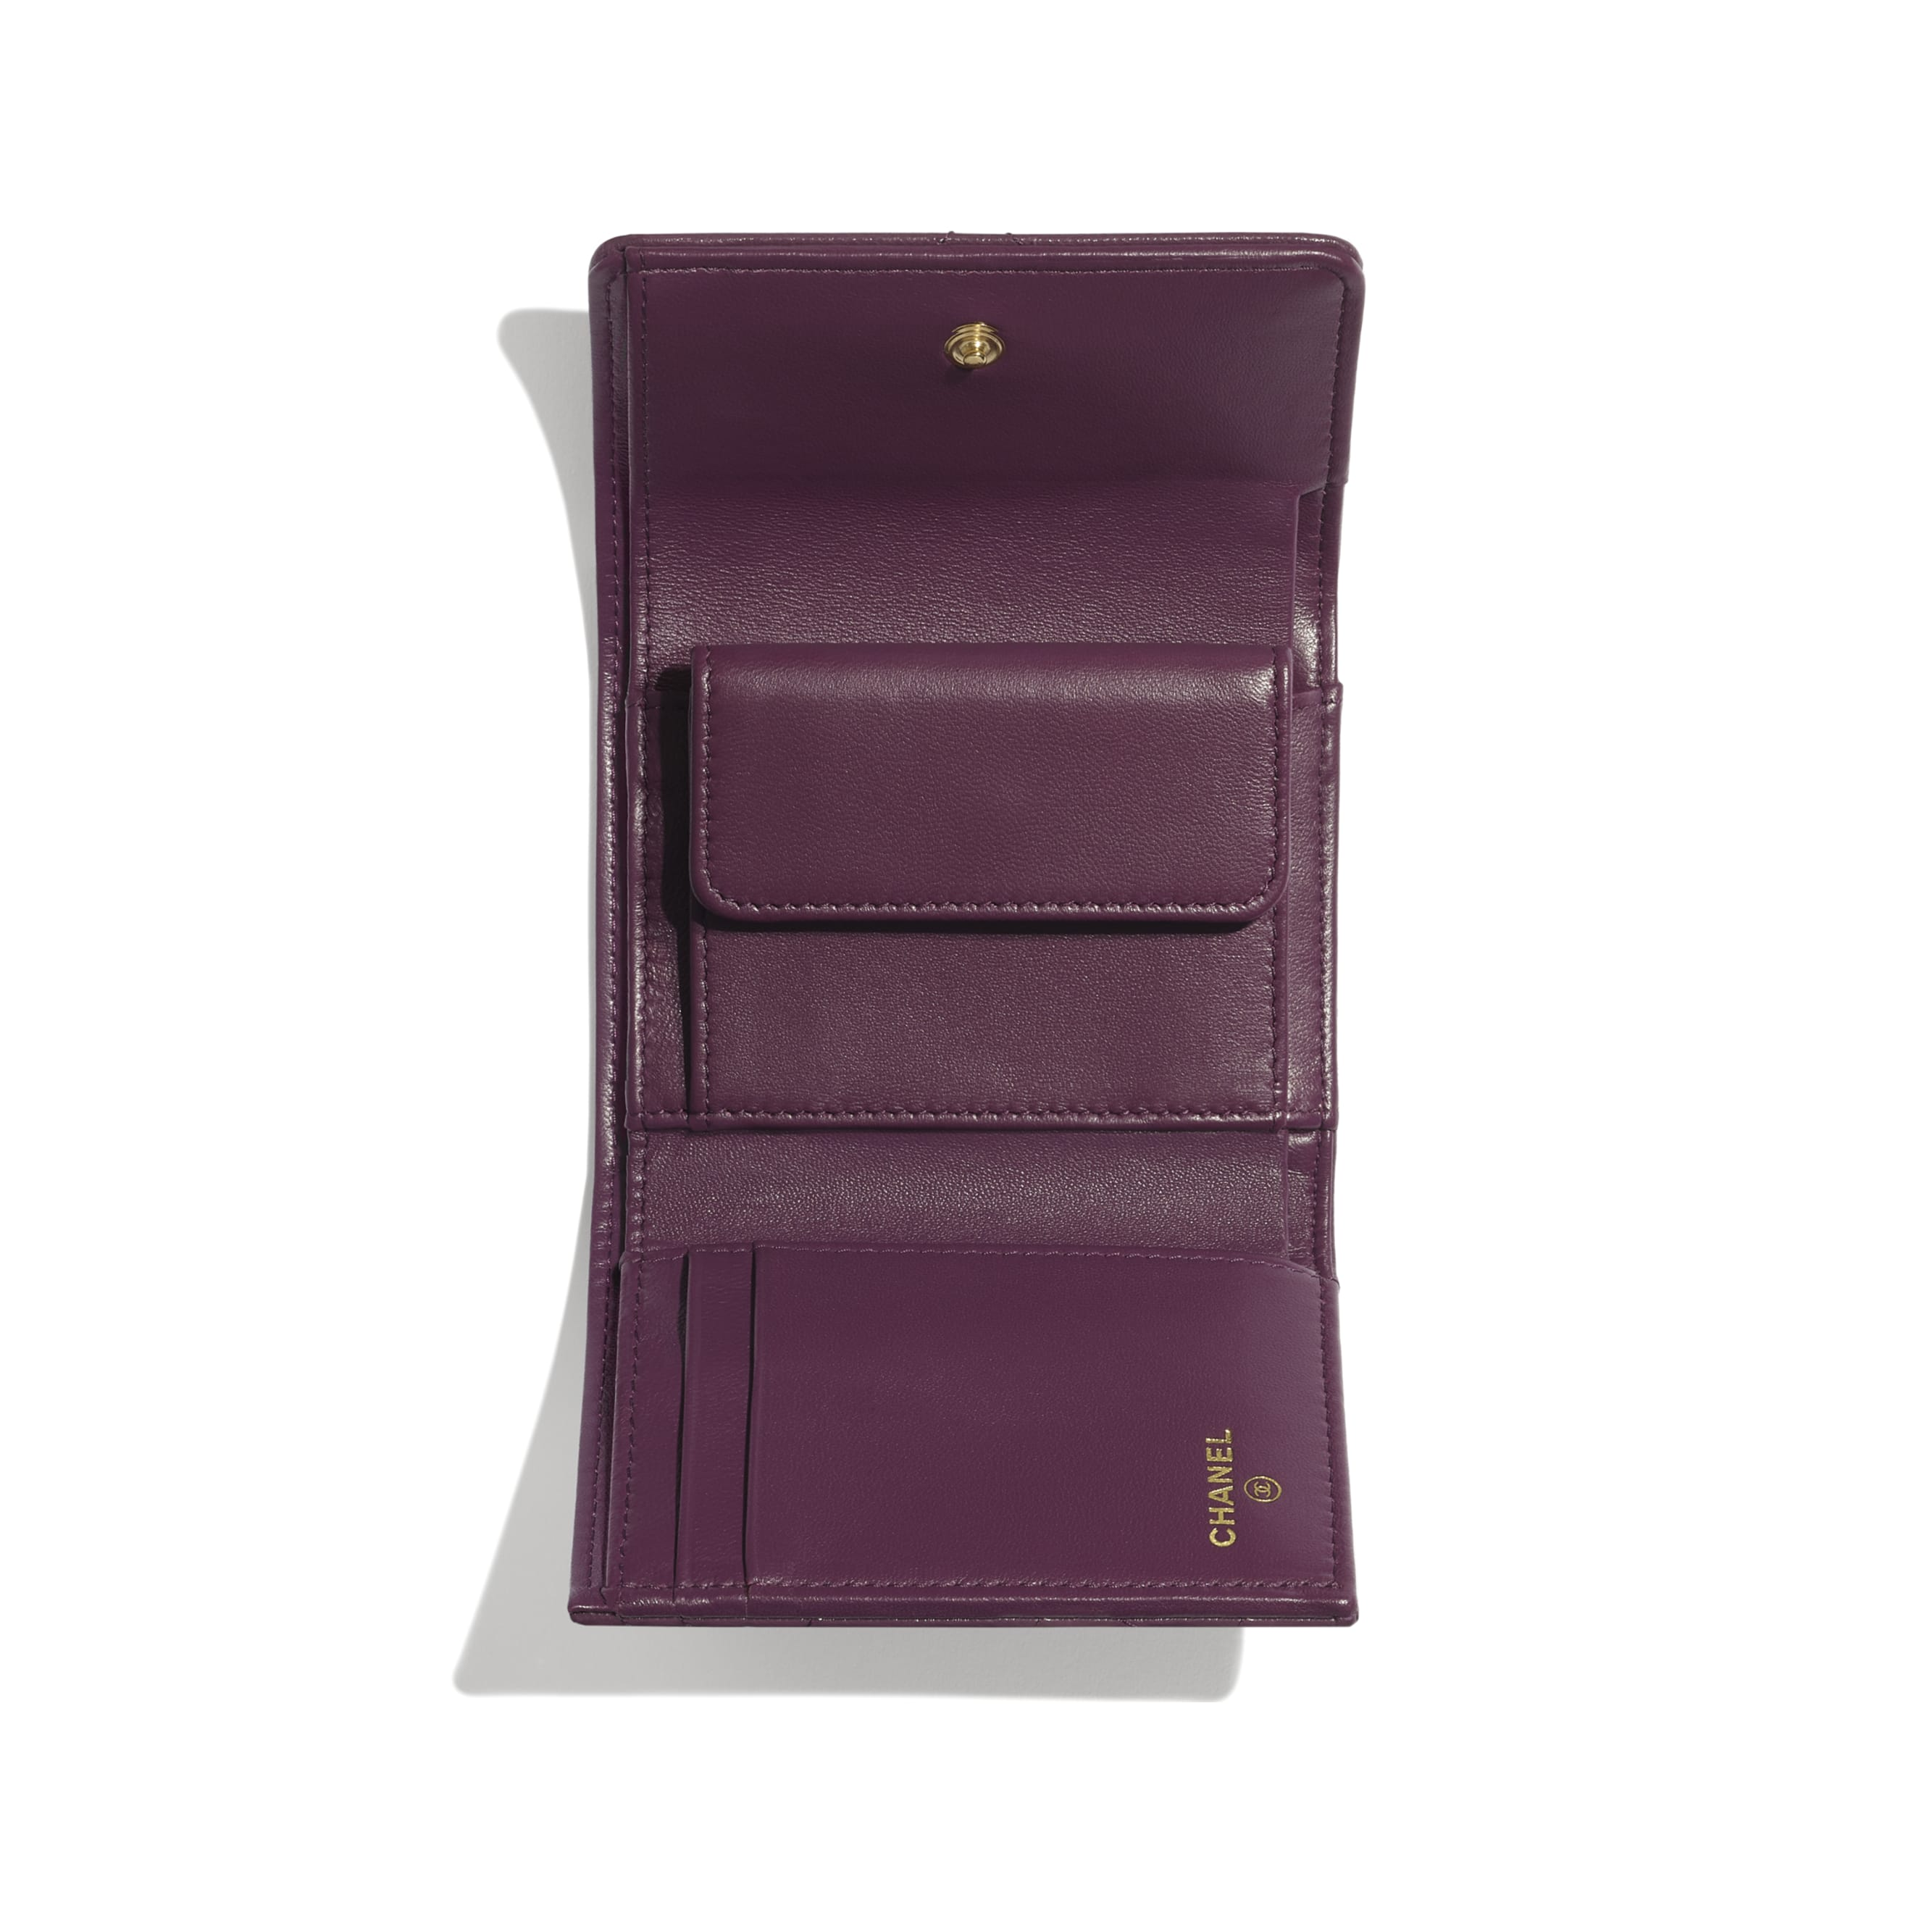 CHANEL 19 Small Flap Wallet - Purple - Shiny Goatskin & Gold-Tone Metal - CHANEL - Other view - see standard sized version